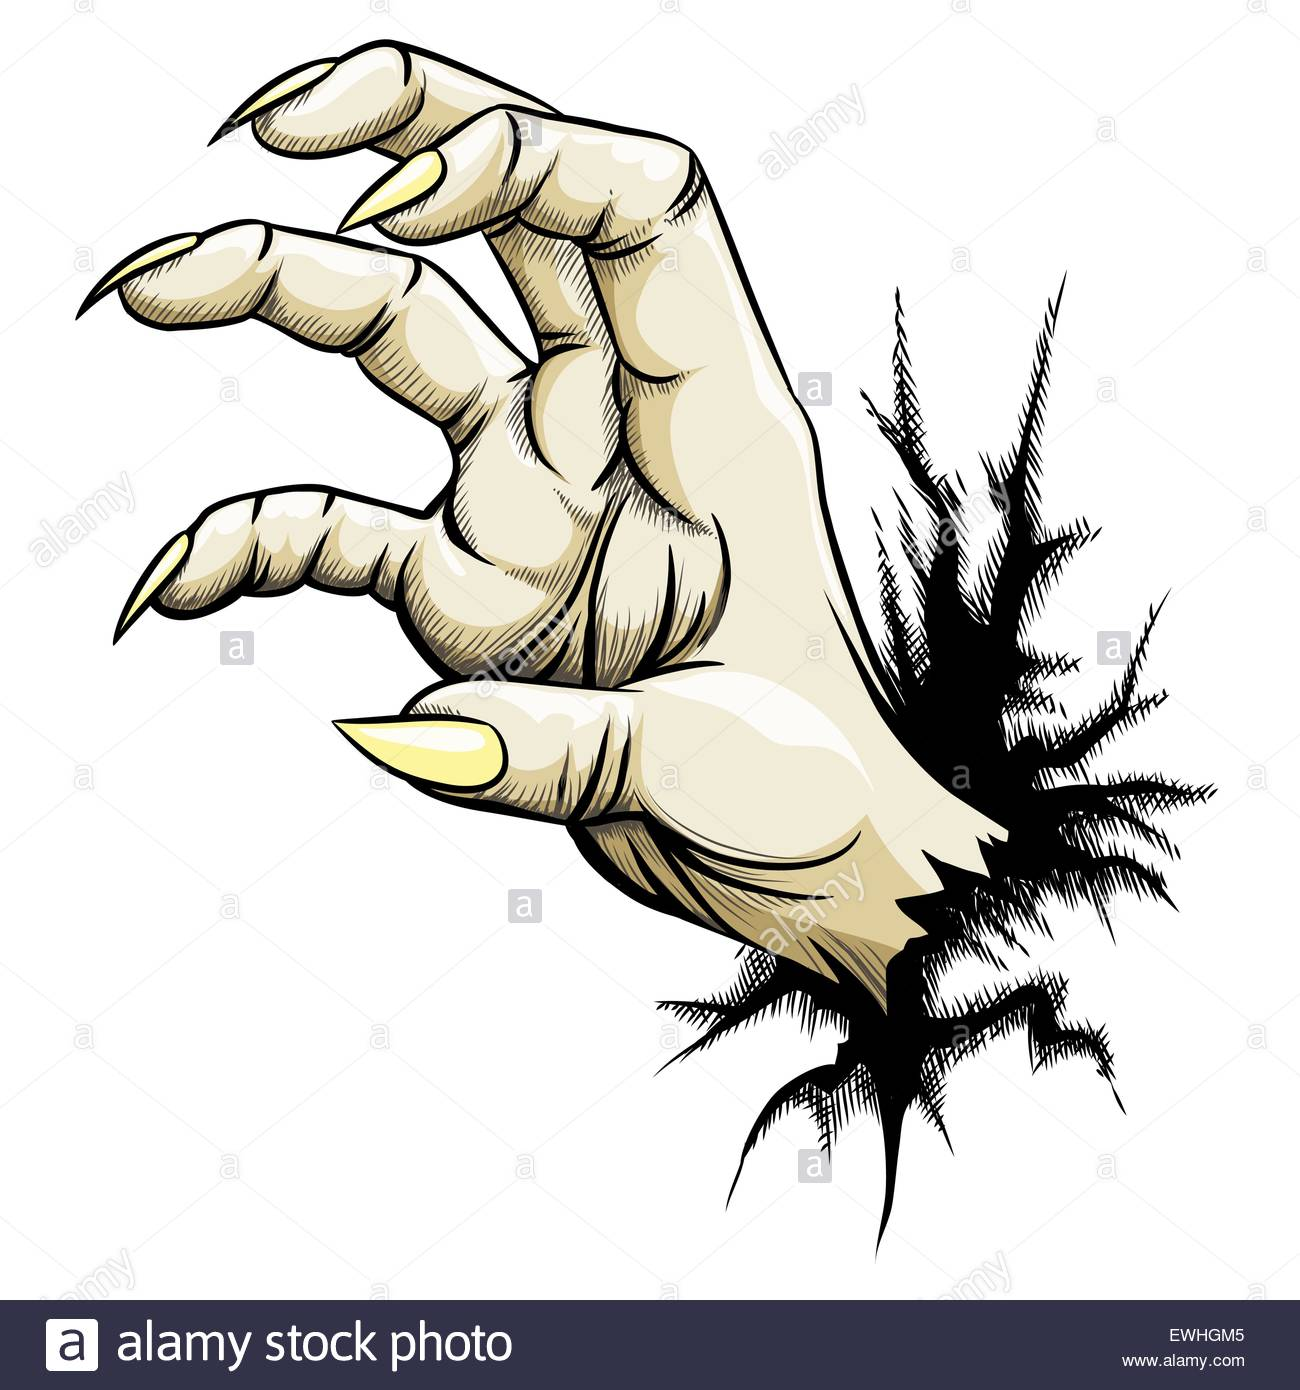 1300x1390 Grabbing Hand With Claws Raised Out Of Fracture. Hand Draw Style